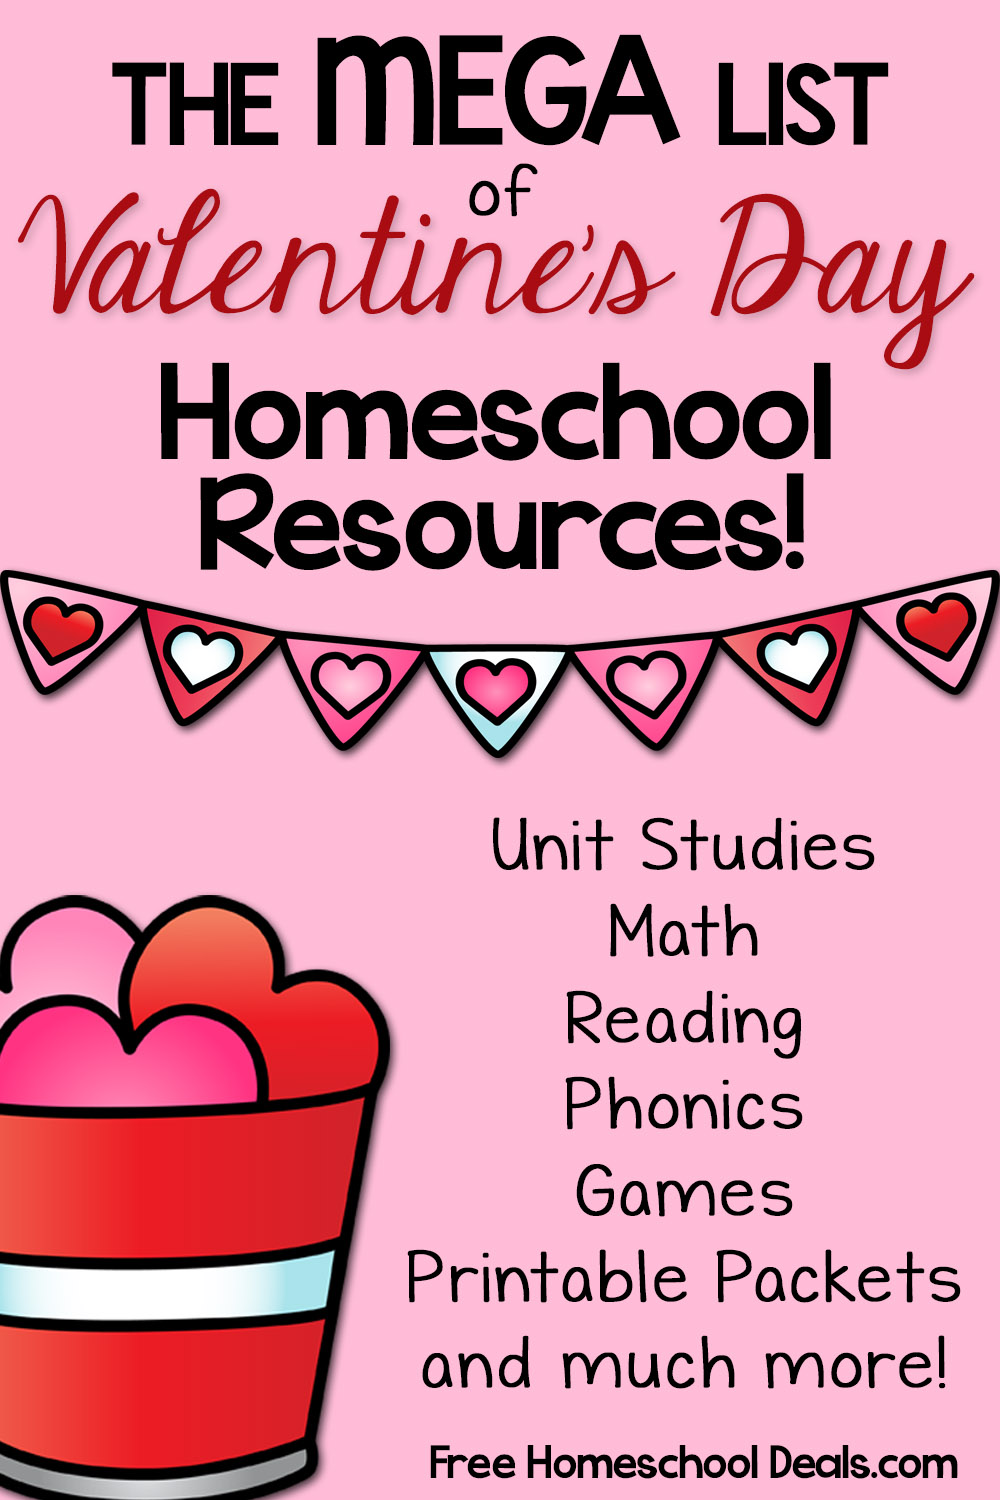 Valentine 39 s Day Learning Resources